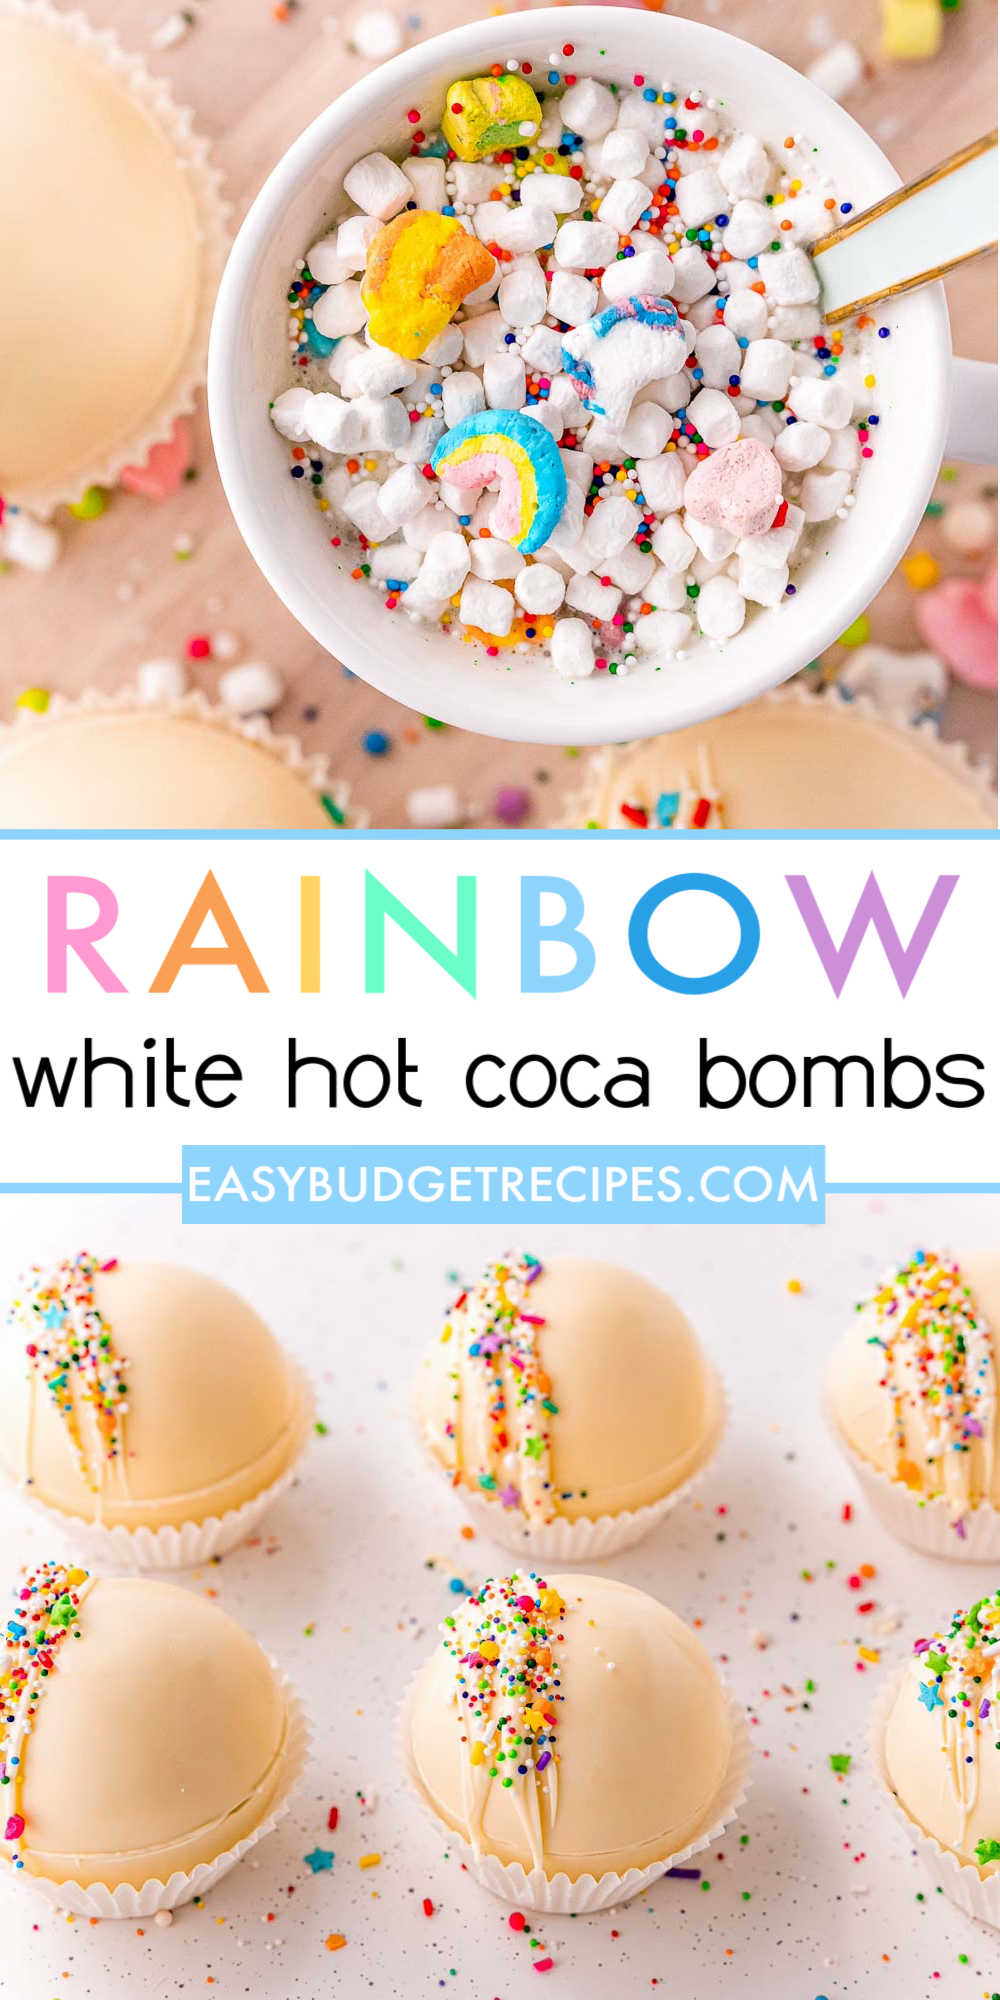 These delicious Rainbow White Hot Chocolate Bombs are made with white chocolate and white hot chocolate mix and Lucky Charms marshmallows. They're great for St. Patty's Day, Easter, Spring, and other events! via @easybudgetrecipes